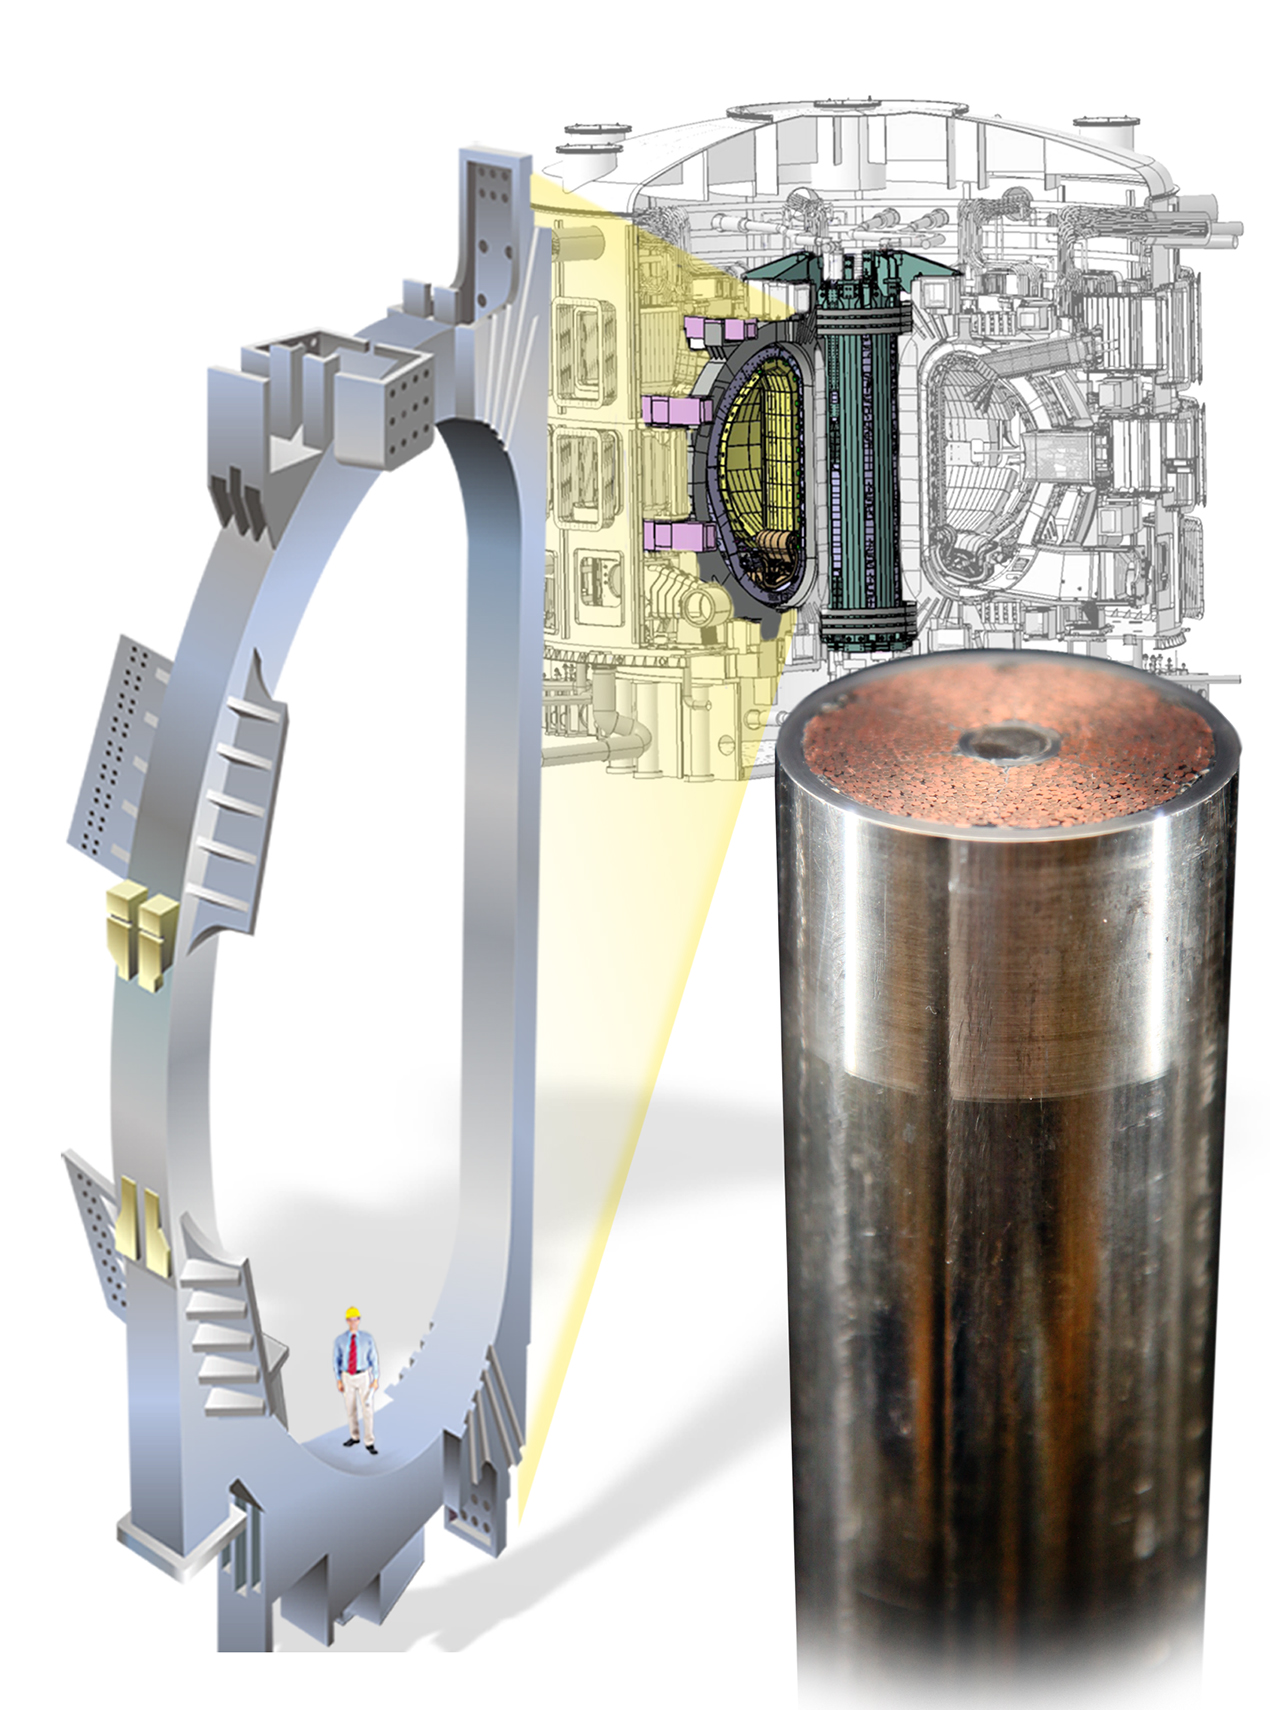 Left: A drawing of single toroidal field coil shows the scale of the ITER tokamak. Right: The compacted strand is visible around the helium cooling channel in the middle of the finished conductor. Source: US ITER